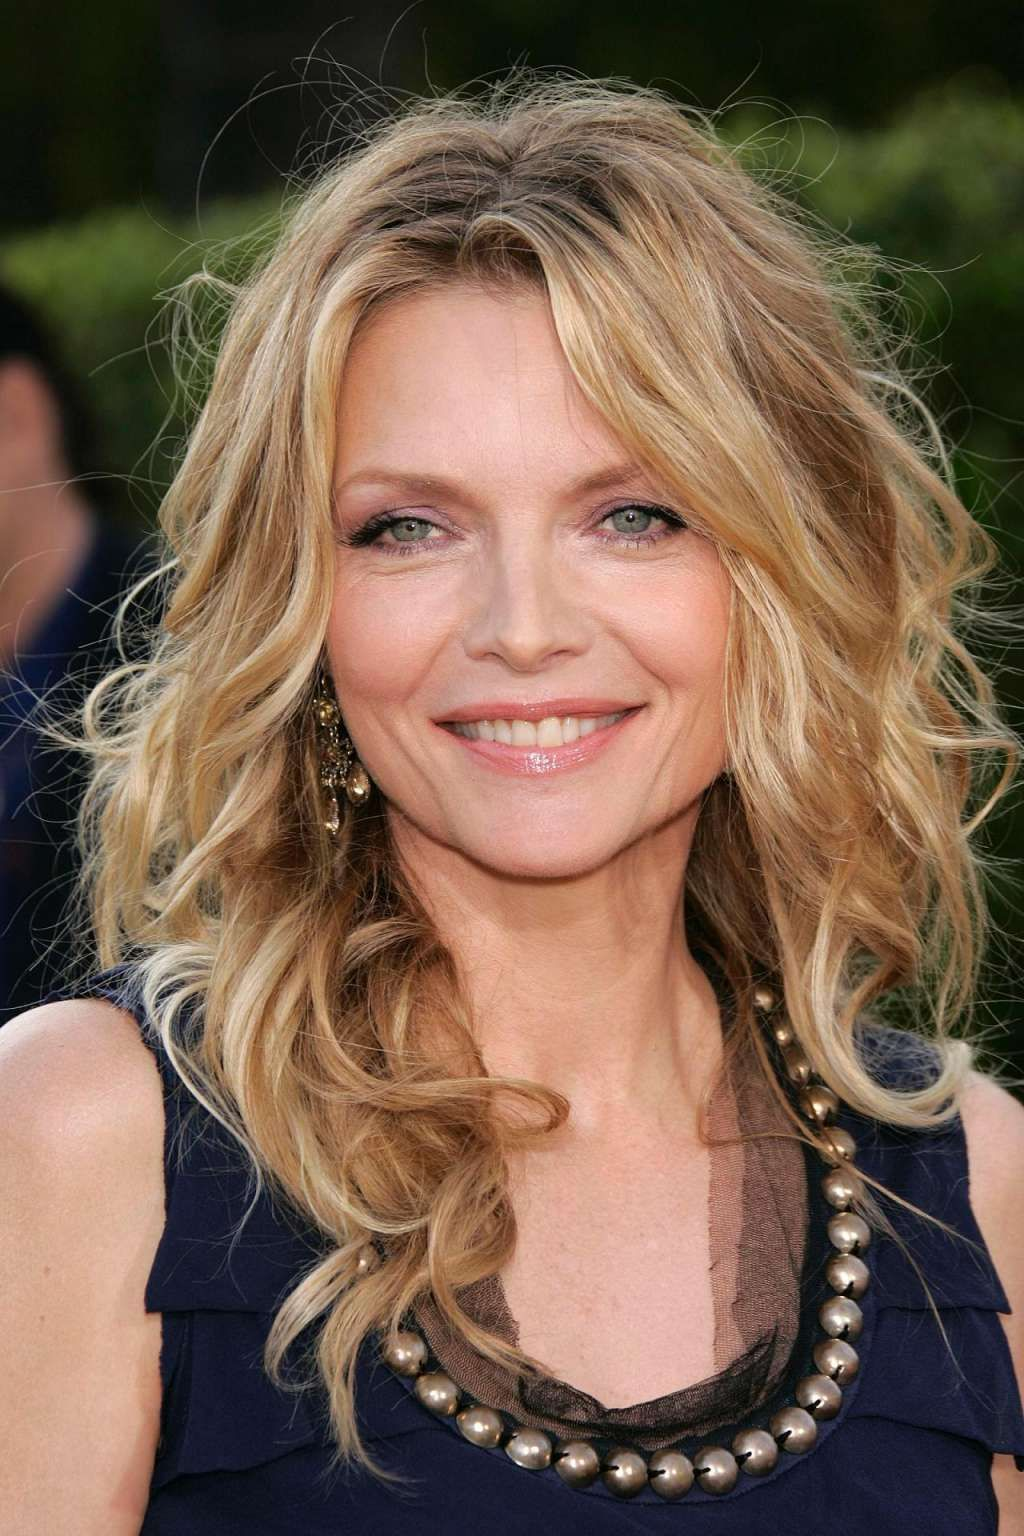 The Most Stunning Celebrity Women Over 50 | Christie